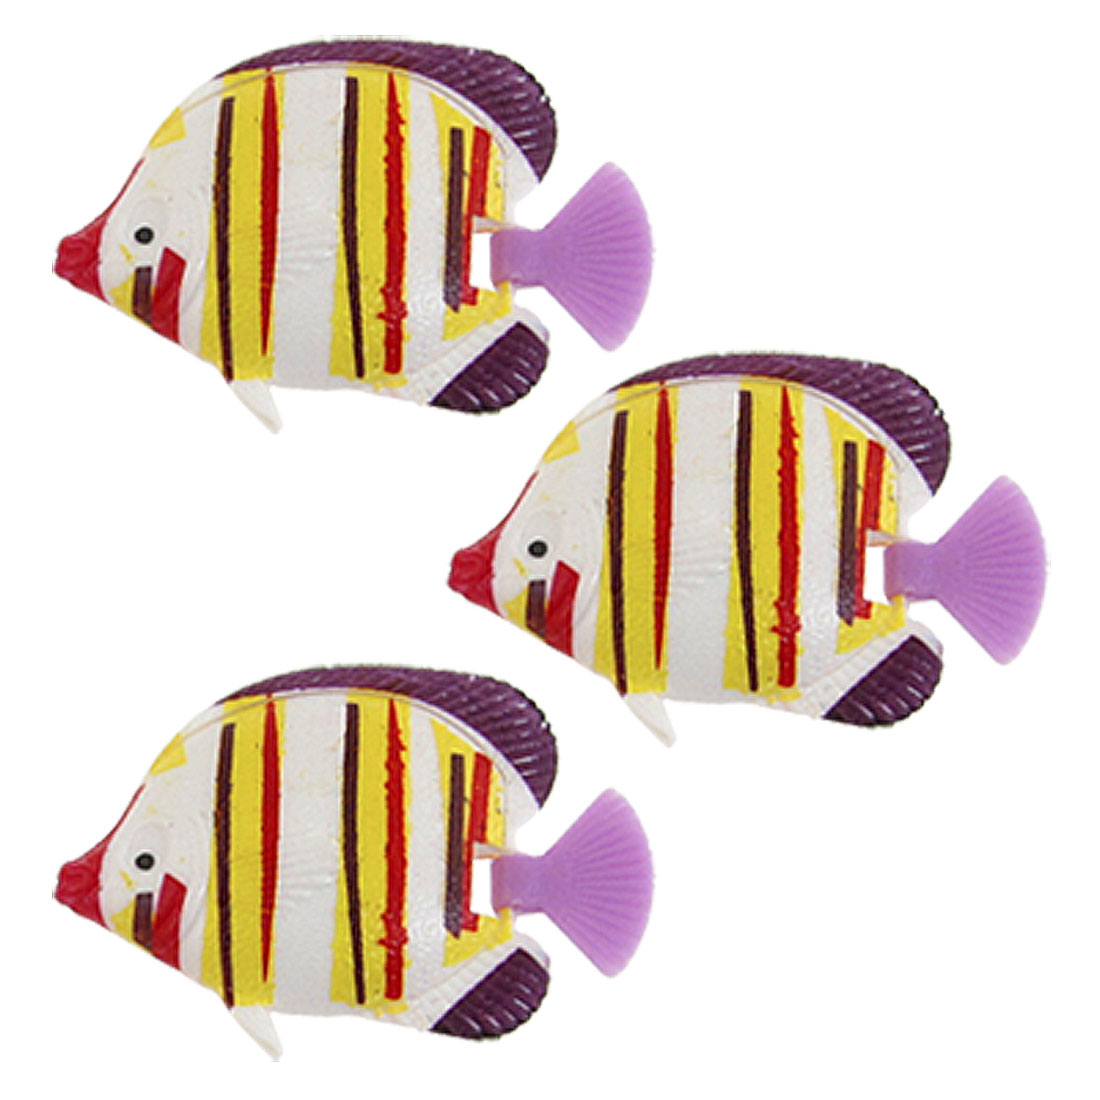 Aquarium Fish Tank Yellow White Plastic Swimming Fish Decoration 3 Pcs